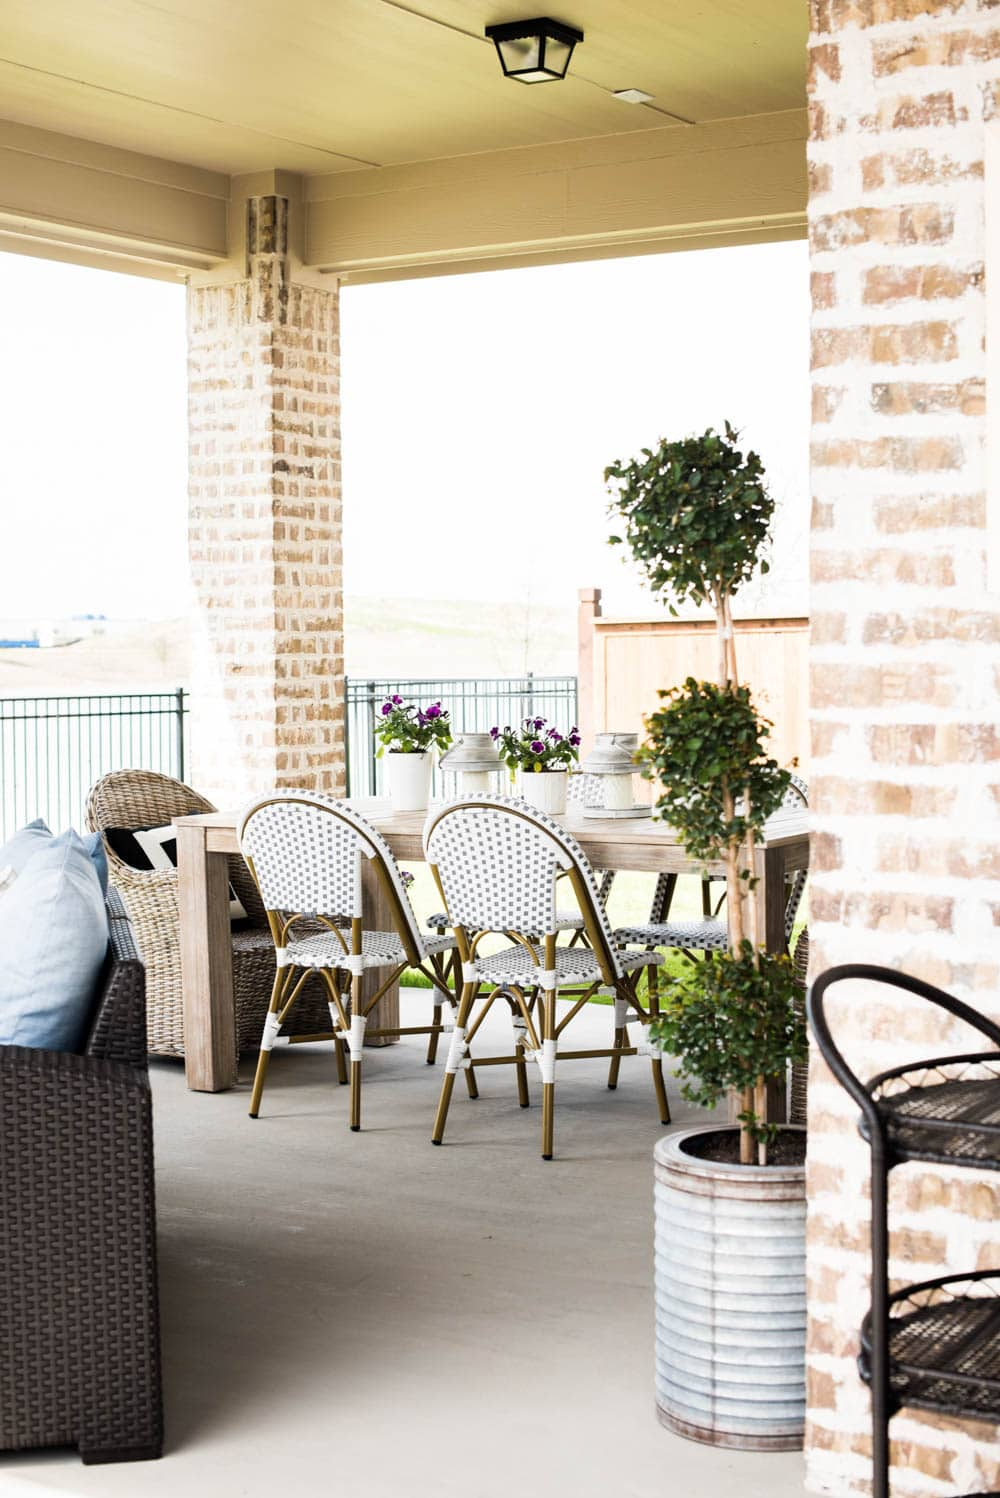 Small Backyard Patio Ideas + My Outdoor Living Space Reveal